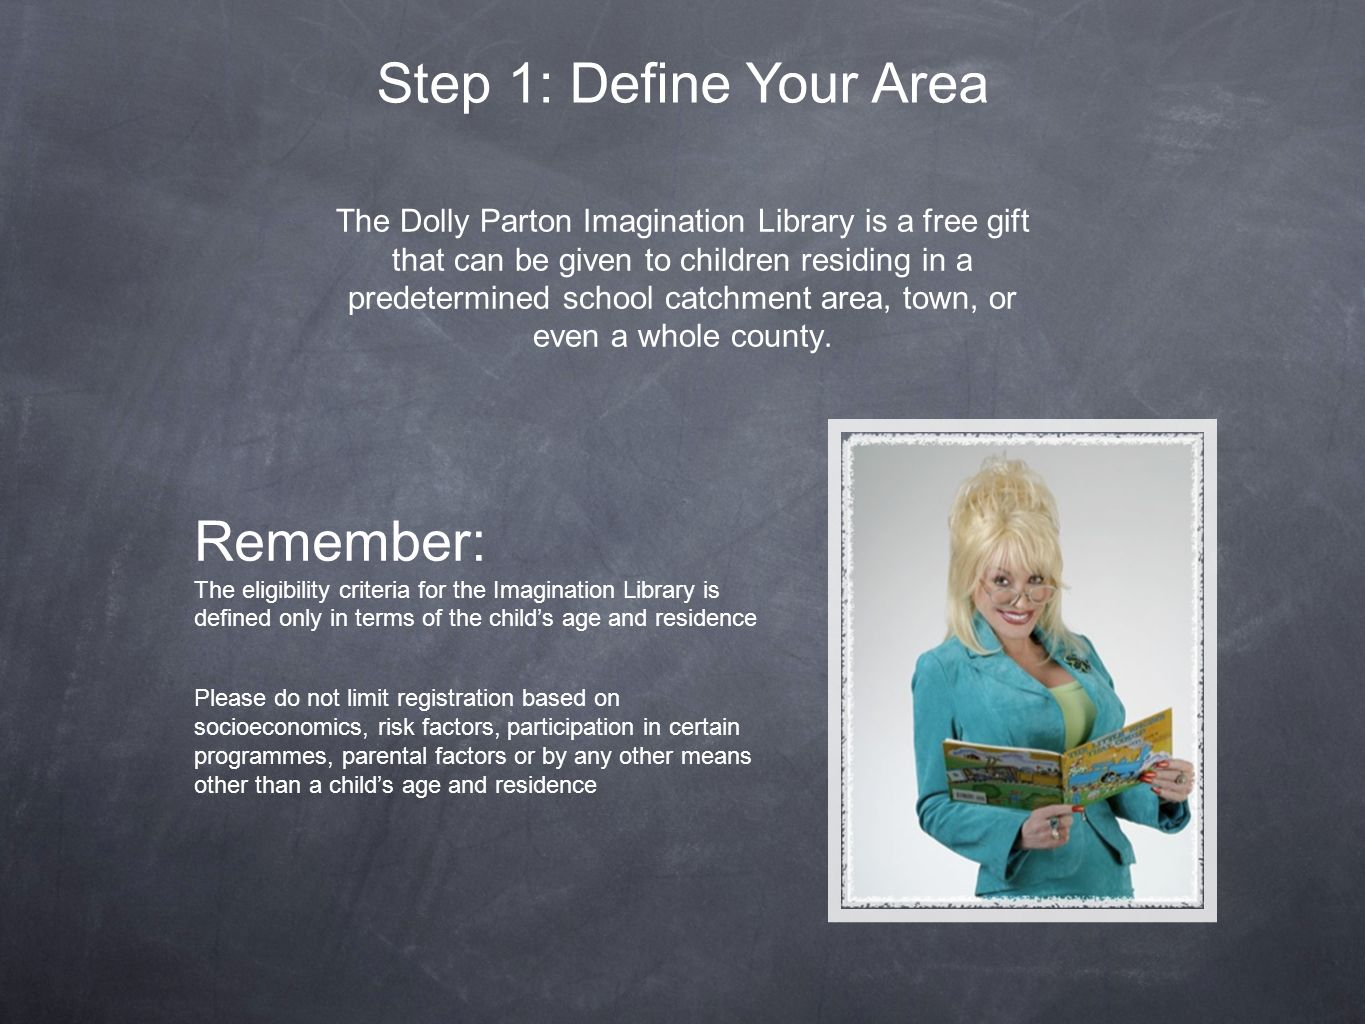 The Dolly Parton Imagination Library is a free gift that can be given to children residing in a predetermined school catchment area, town, or even a whole county.